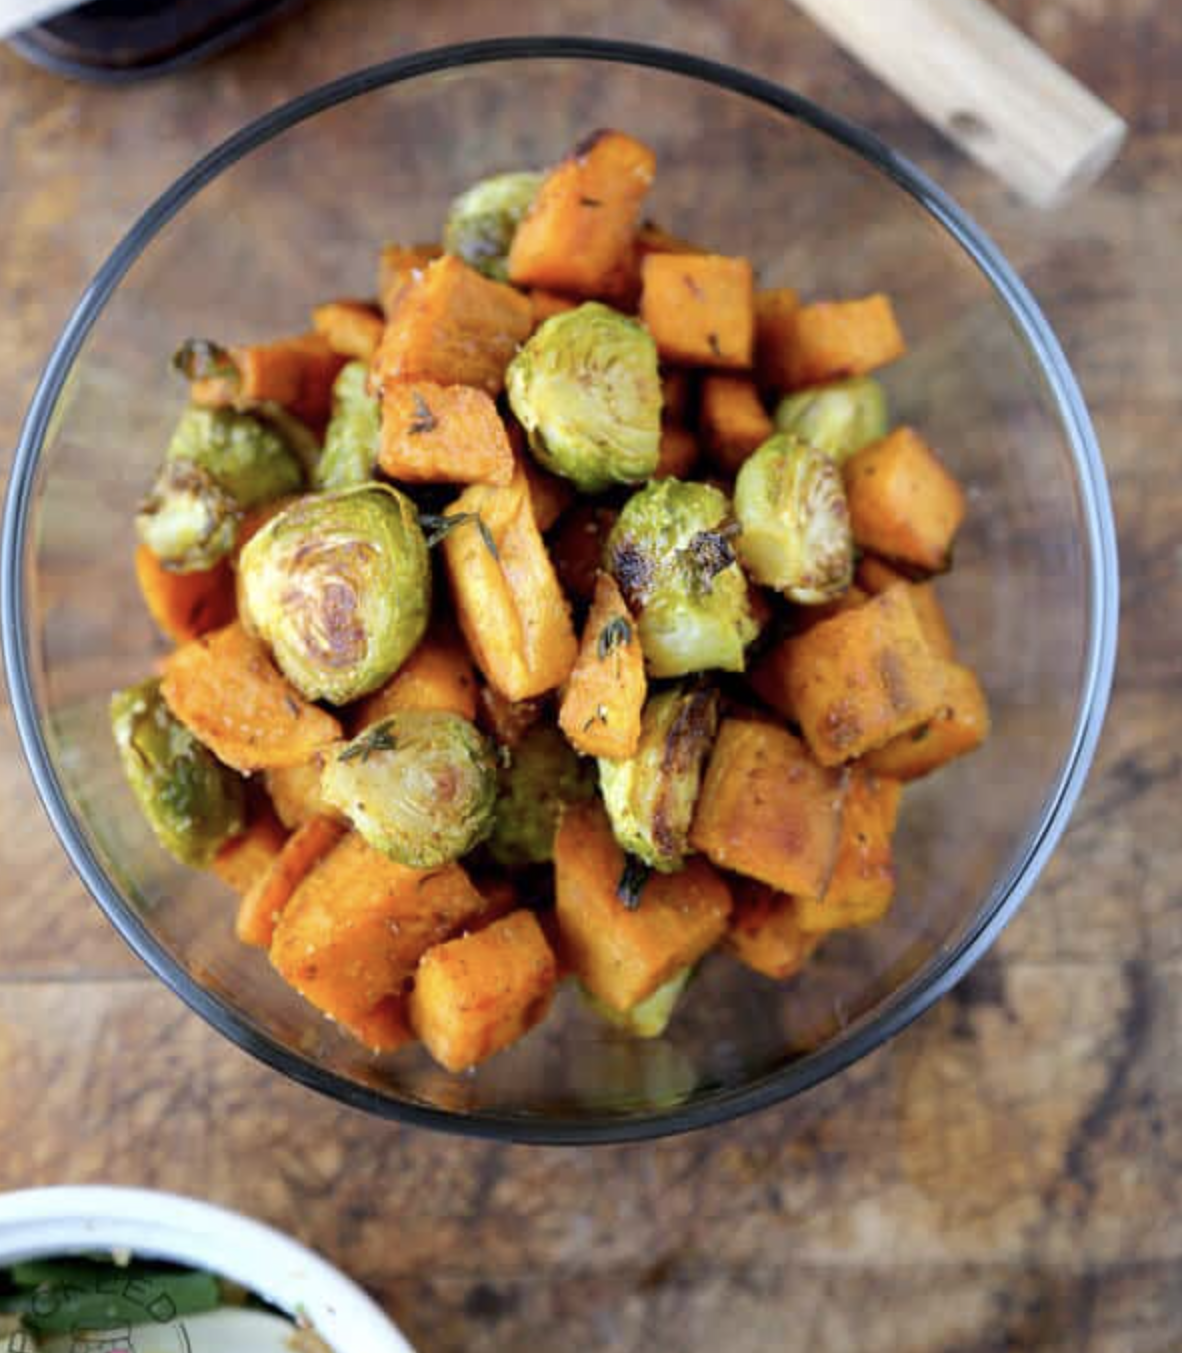 Oven Roasted Sweet Potatoes and Brussels